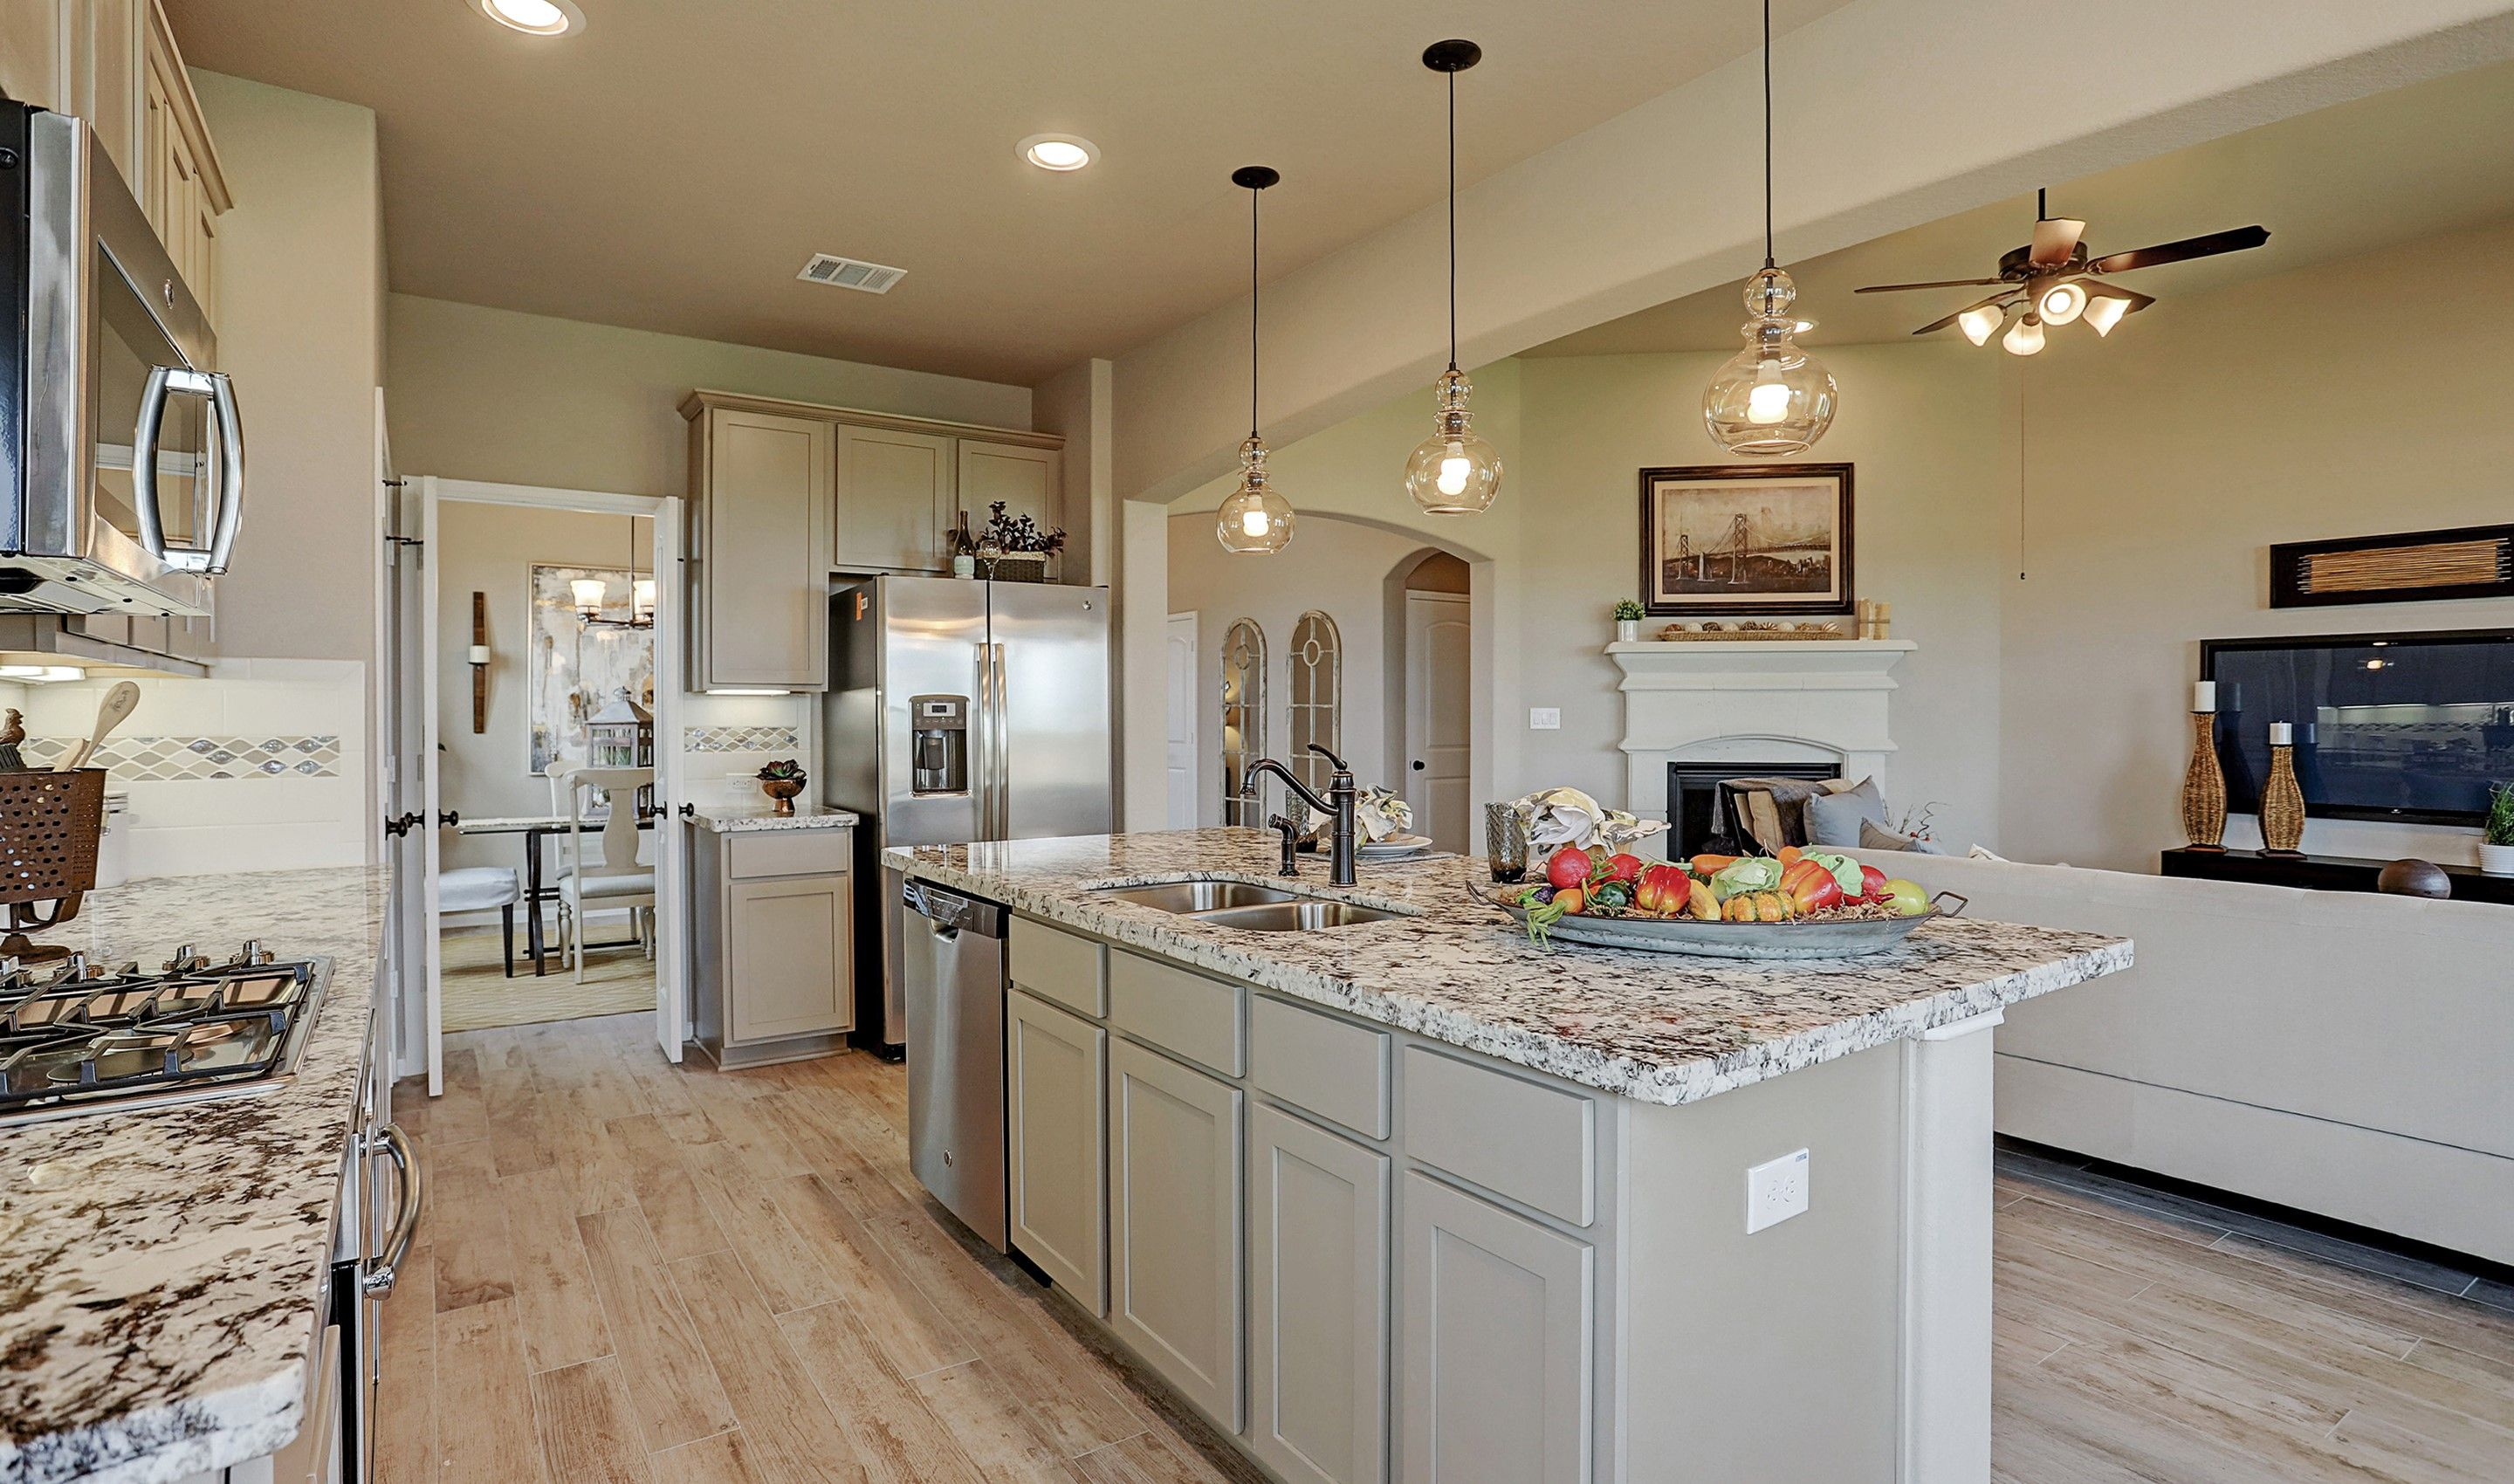 Kitchen featured in the Blakemore II By K. Hovnanian® Homes in Brazoria, TX